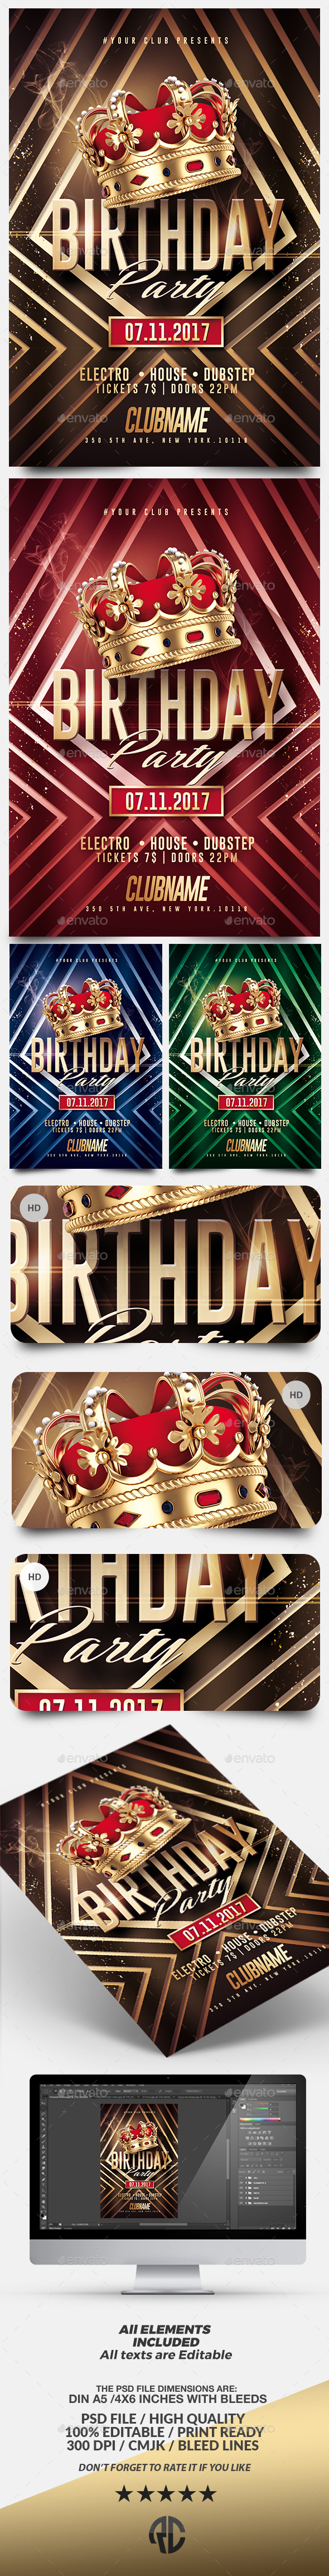 Gold Birthday | Kings Flyer Template - Clubs & Parties Events